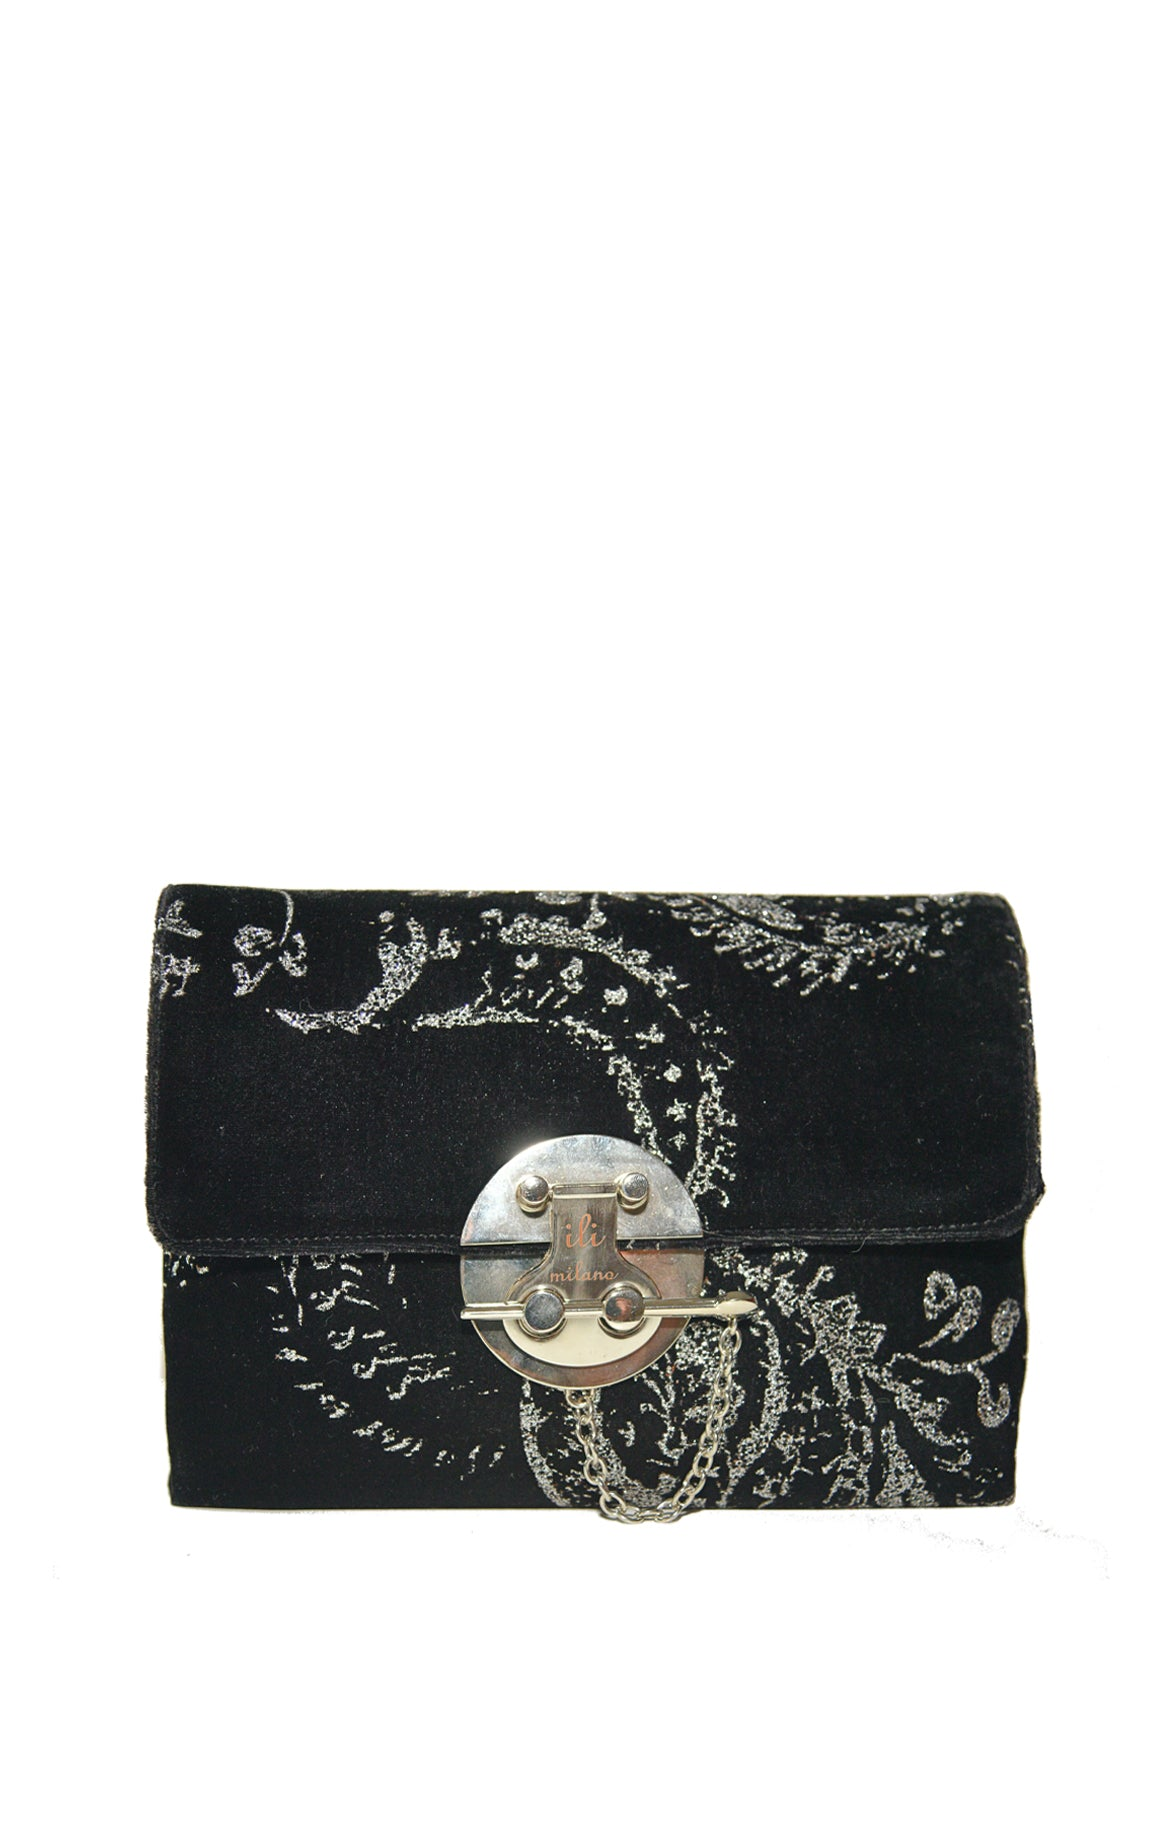 Black & Silver Key Medium Bag